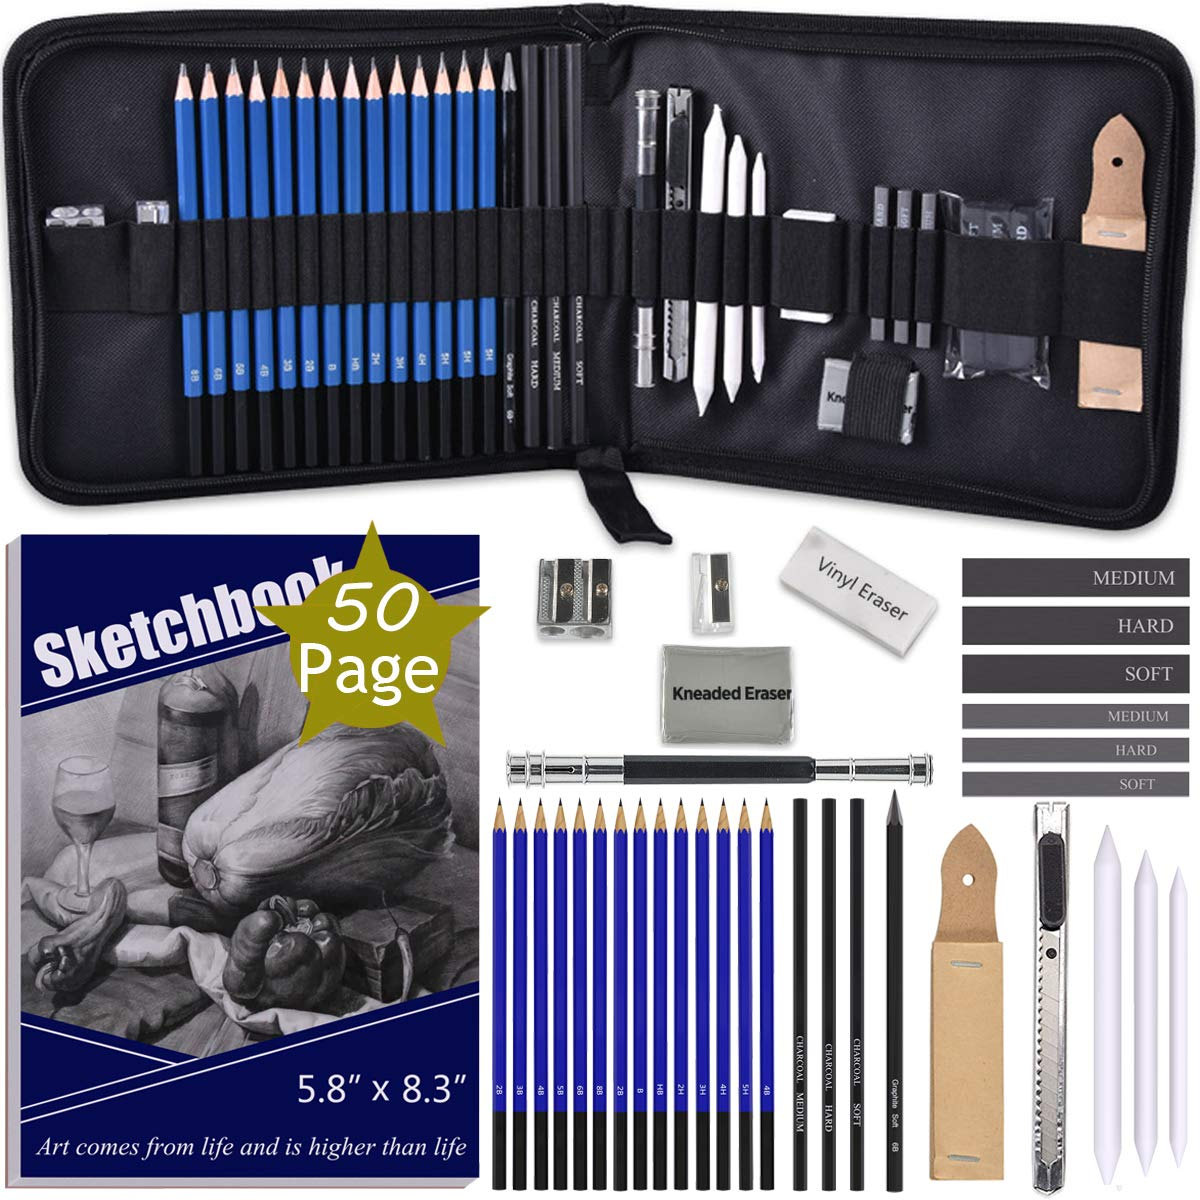 ARTOSA Drawing Pencils with Sketch Book 50 Pages, 35 Piece Sketch Pencils Professional Drawing Kit in Zipper Case, Sketching Art Set with Graphite Charcoal Sticks Tool for Adults Kids(All in One Case) by ARTOSA